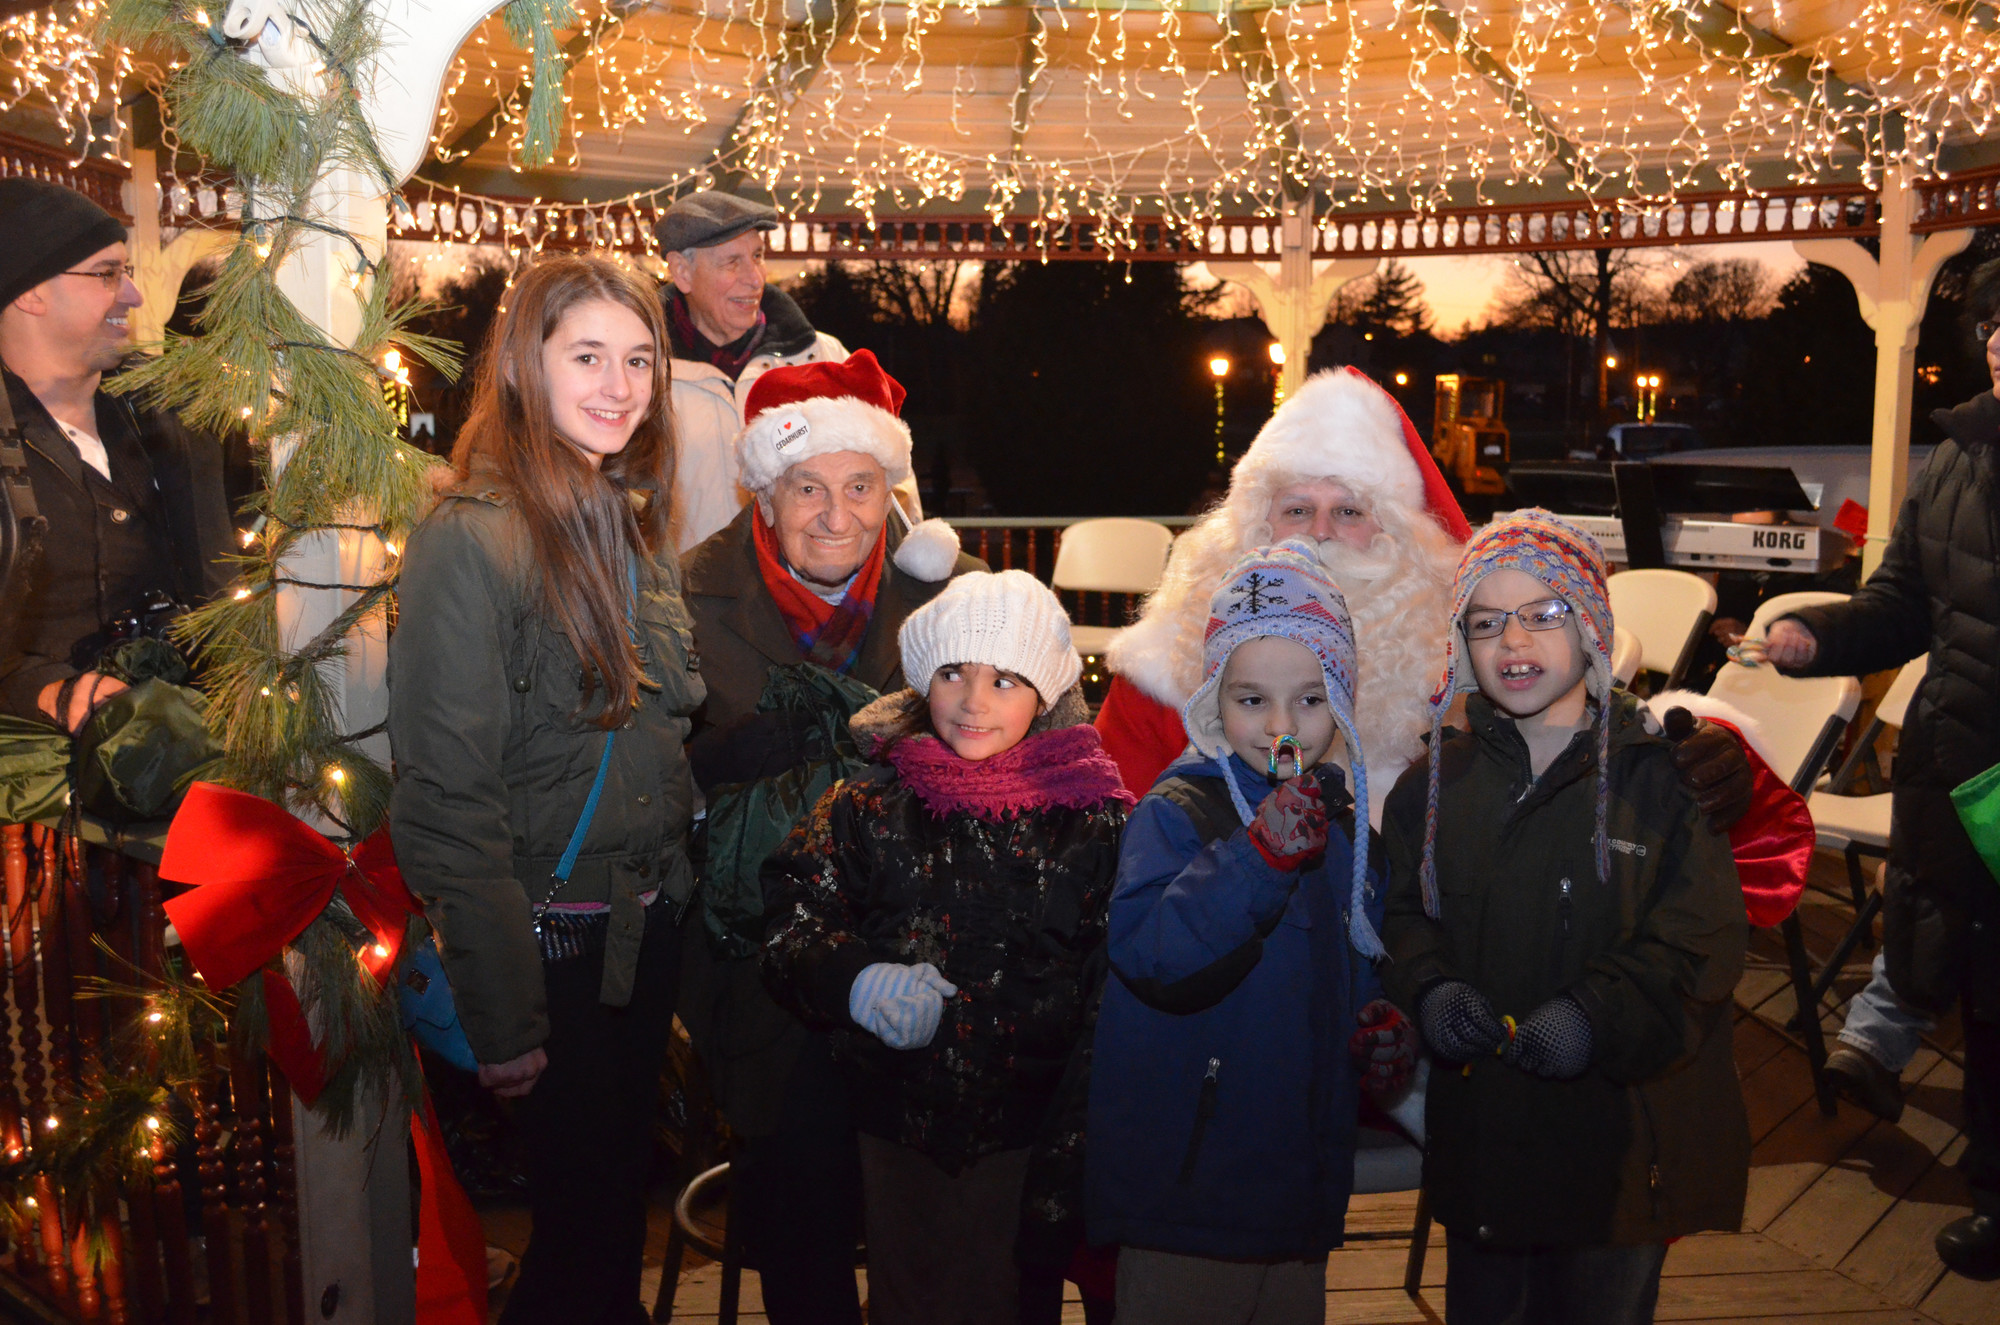 Cedarhurst Mayor Andrew Parise could usually be found in the middle of any village event. From left, at last December's annual holiday celebration and tree lighting, were Silvia Carlo, Parise, Isabela Iasevoli, Mark and Matthew Iacomino, and Santa Claus.